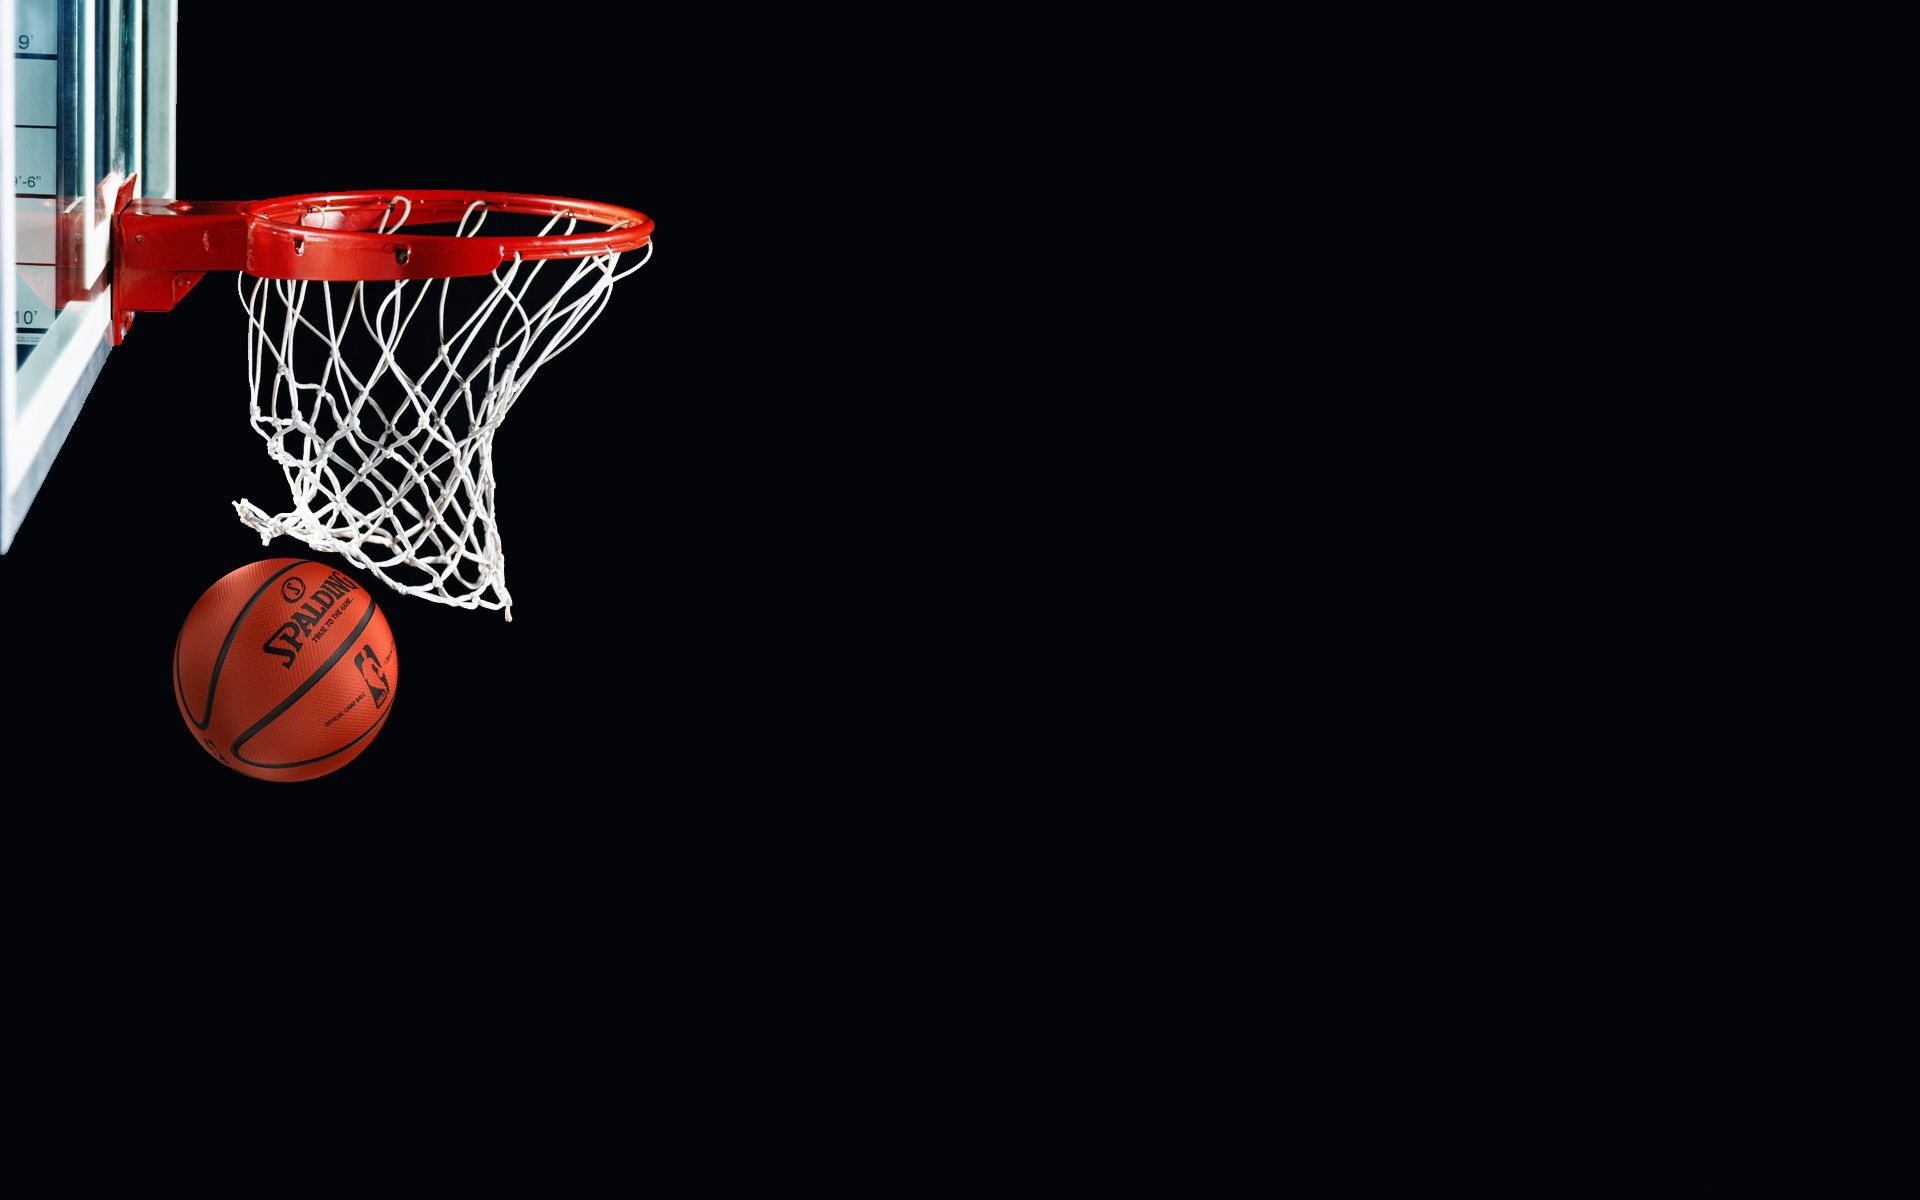 Basketball Wallpapers. Awesome Basketball Wallpapers. Basketball Wallpapers 2015. Basketball Wallpapers For Android.